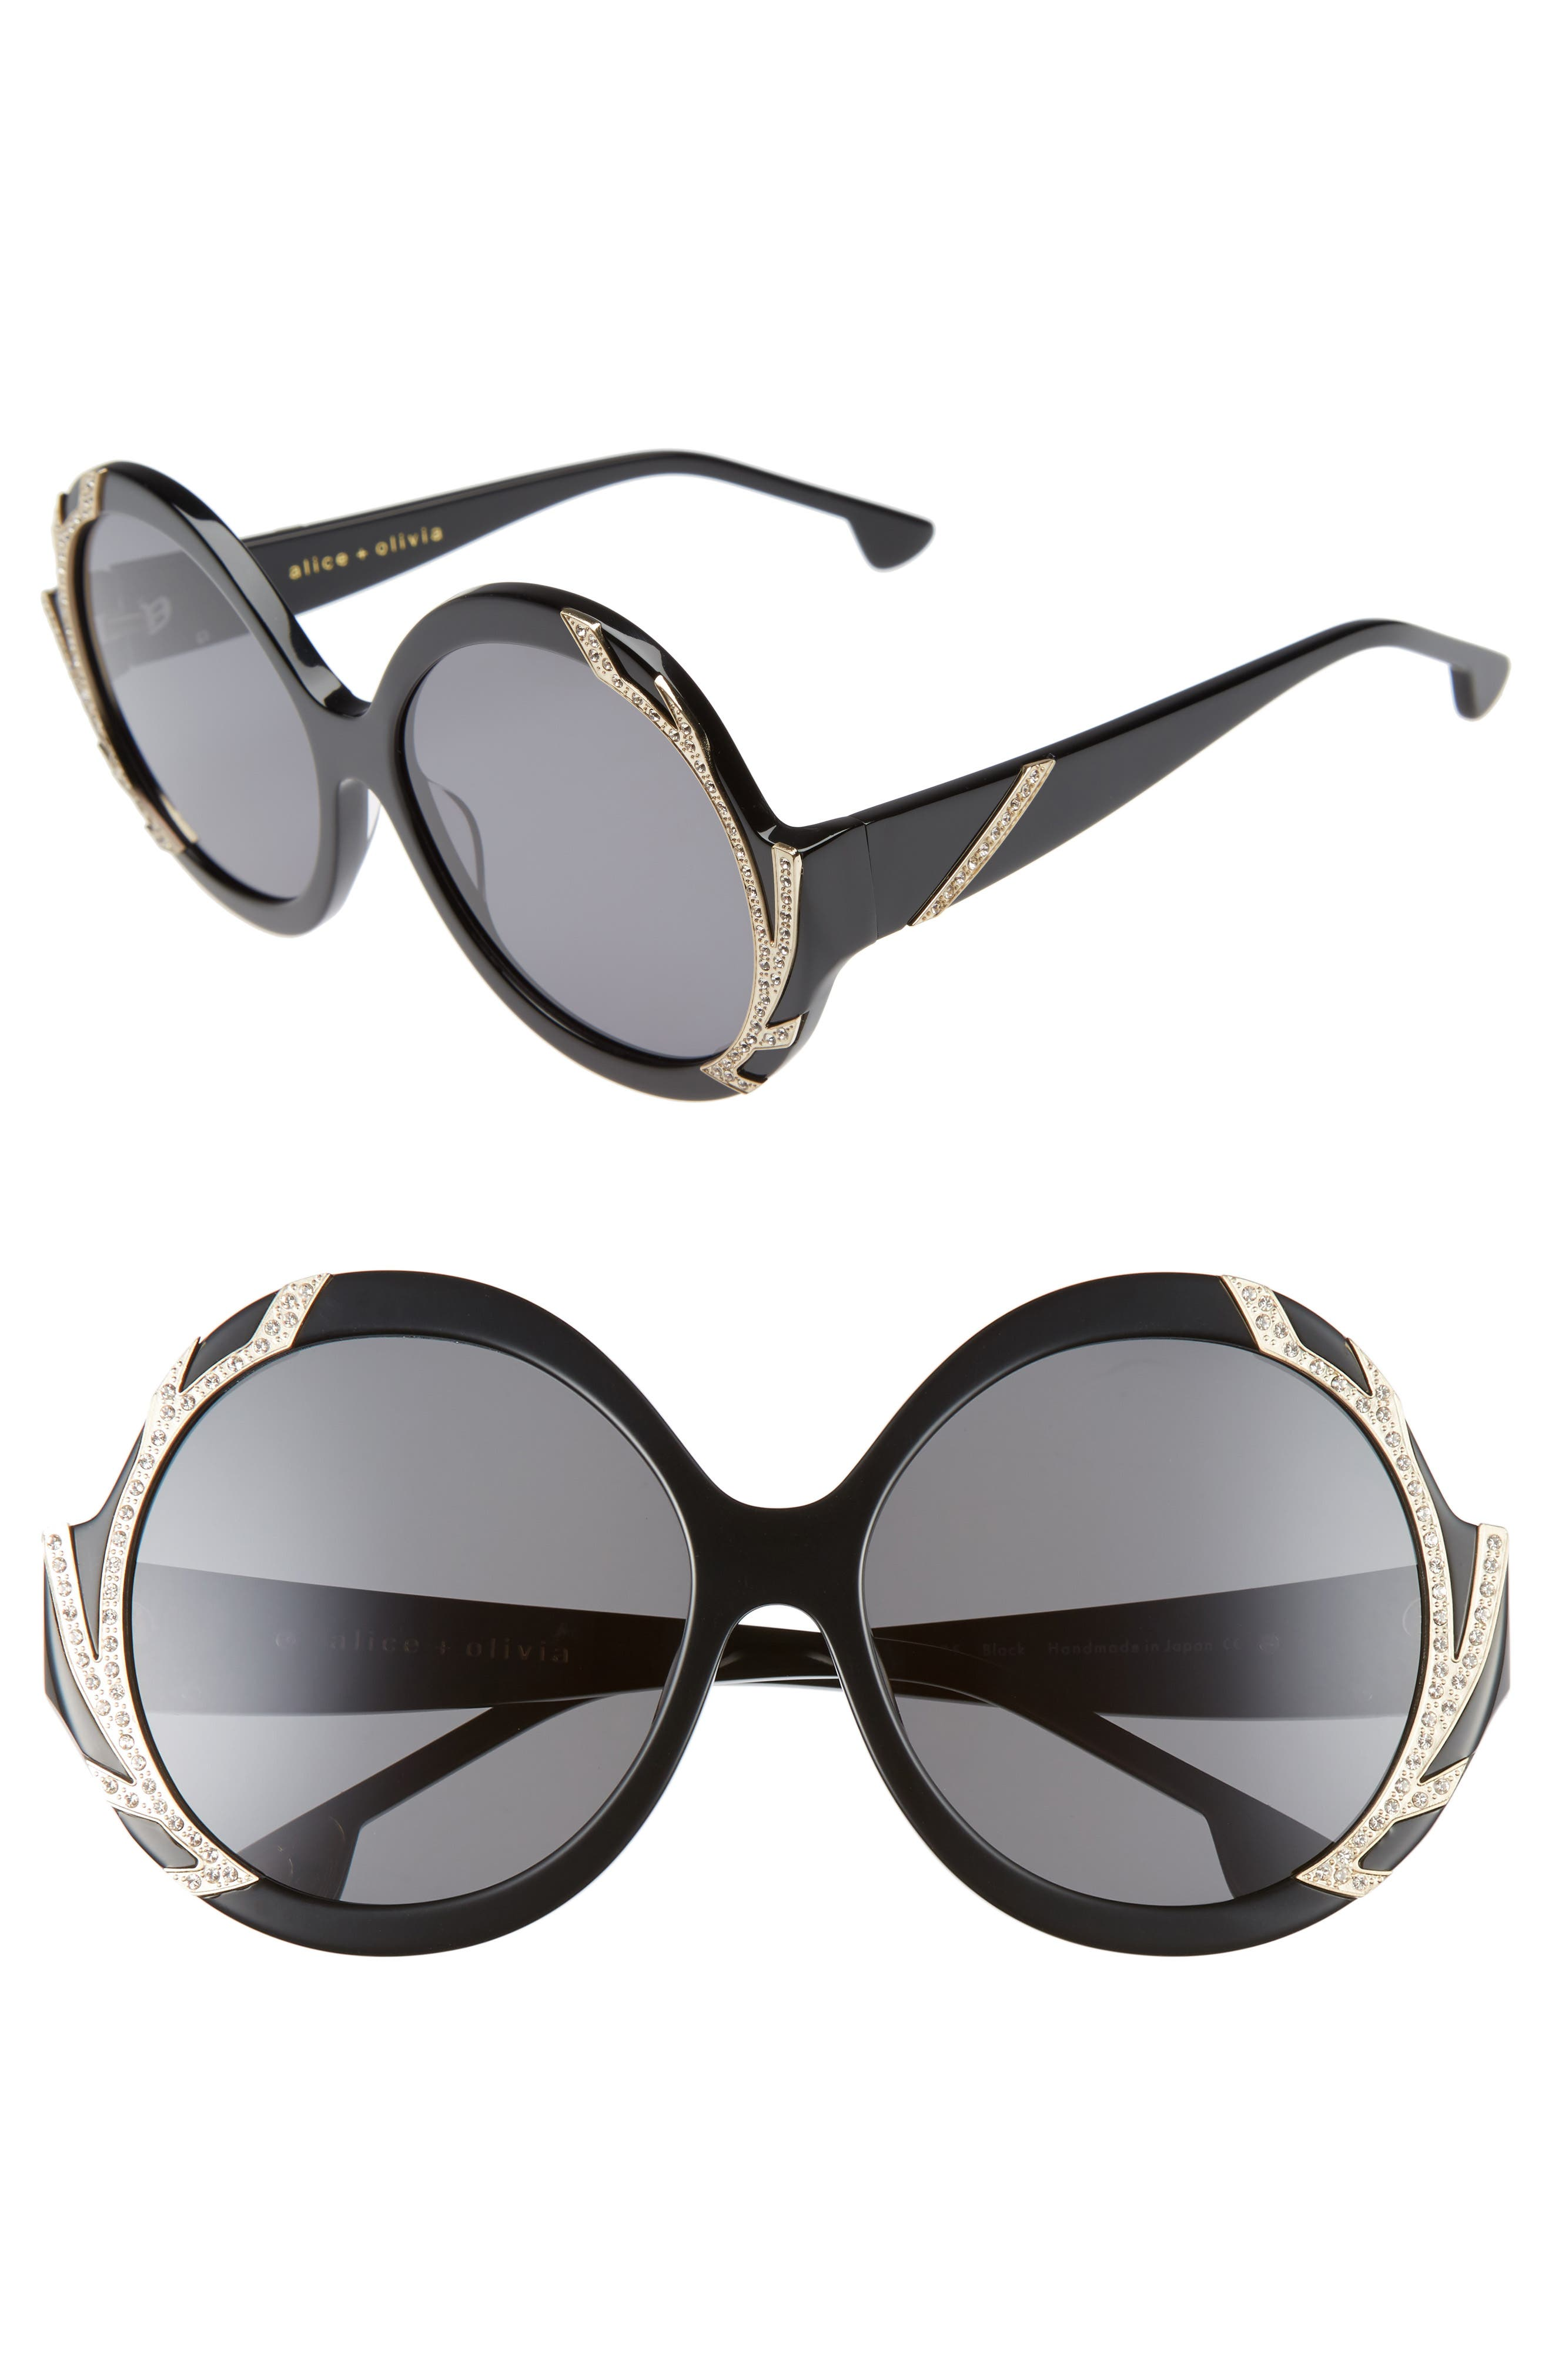 Stacey Crystal 59mm Gradient Lens Round Sunglasses,                             Main thumbnail 1, color,                             001